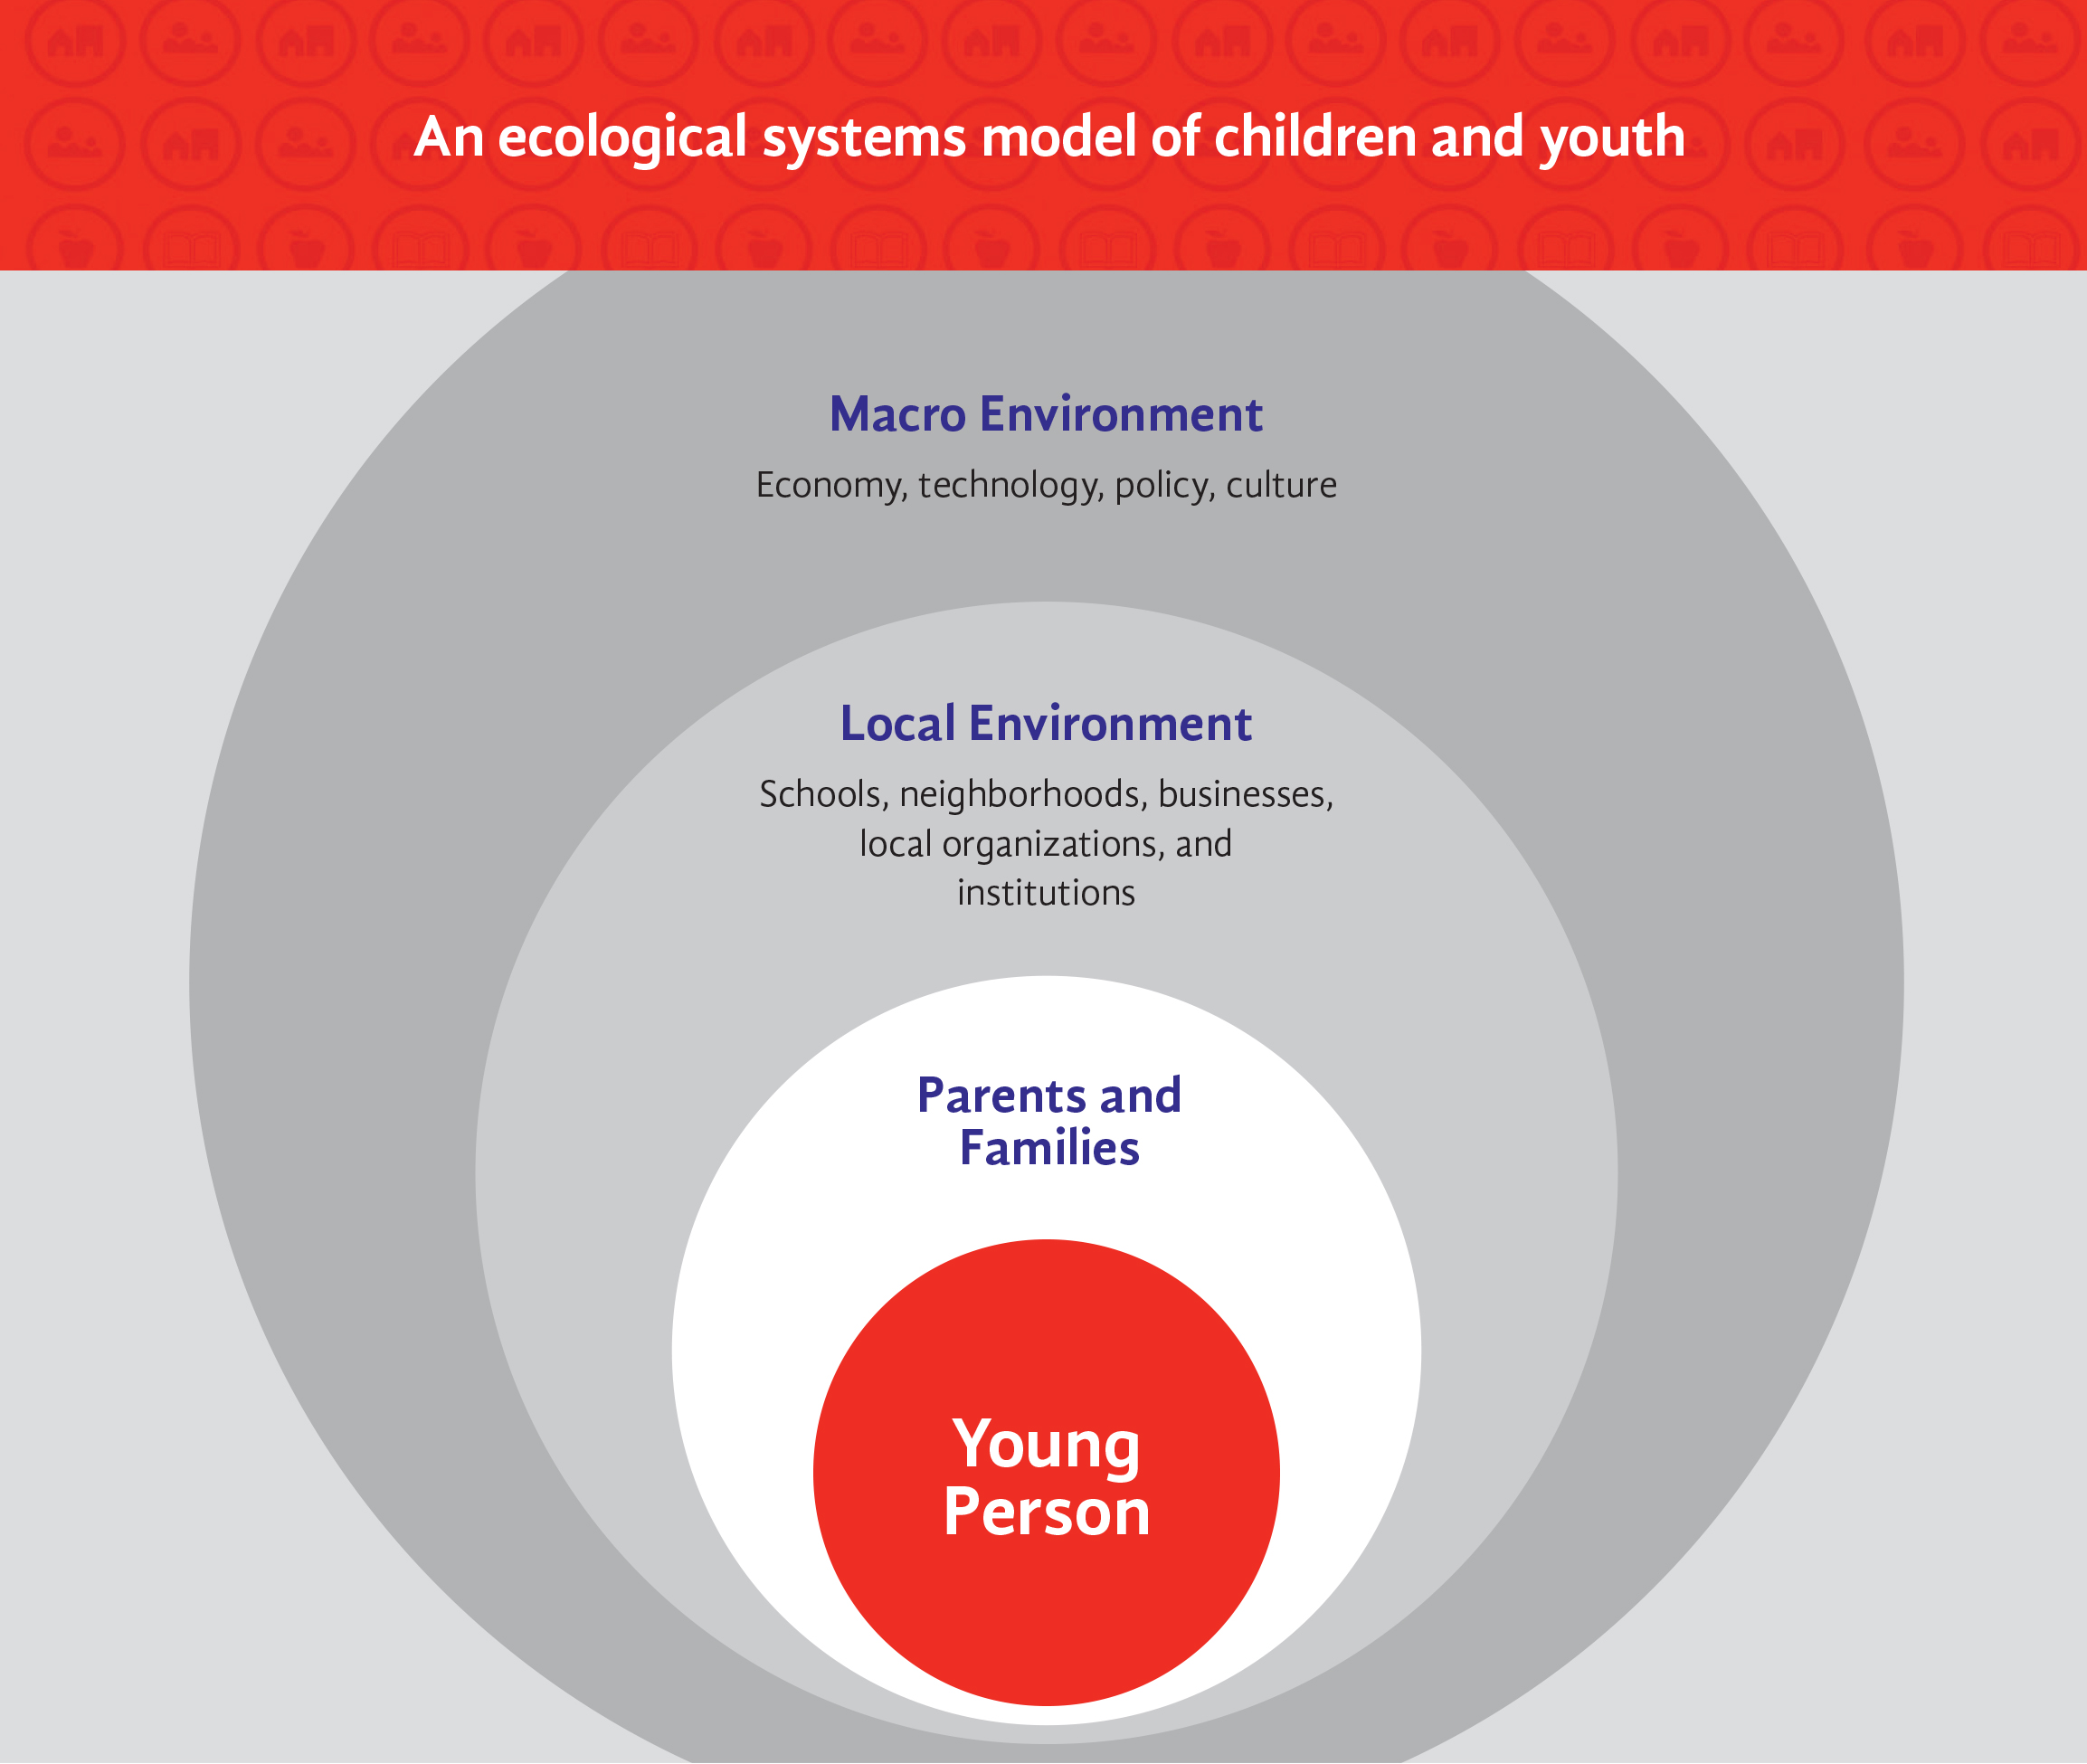 An Ecological systems model of children and youth